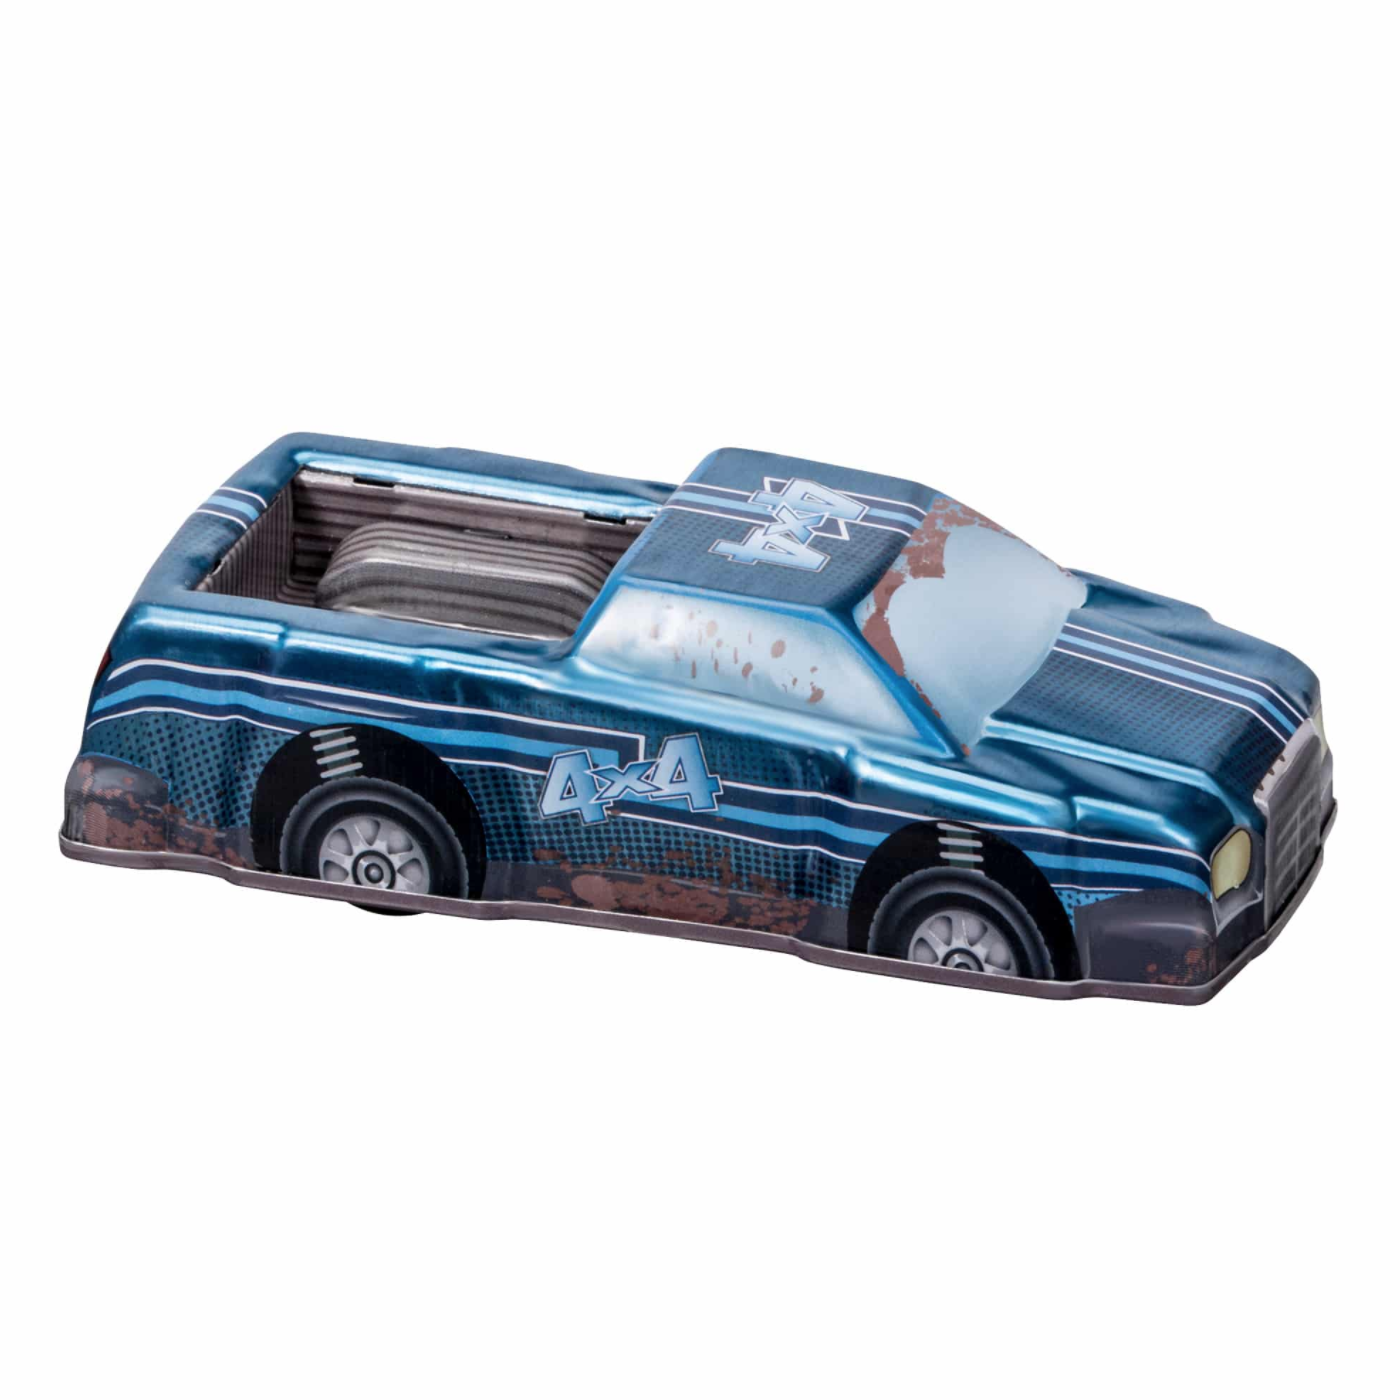 Rev-Up Racers Tin Trucks Blue 4x4